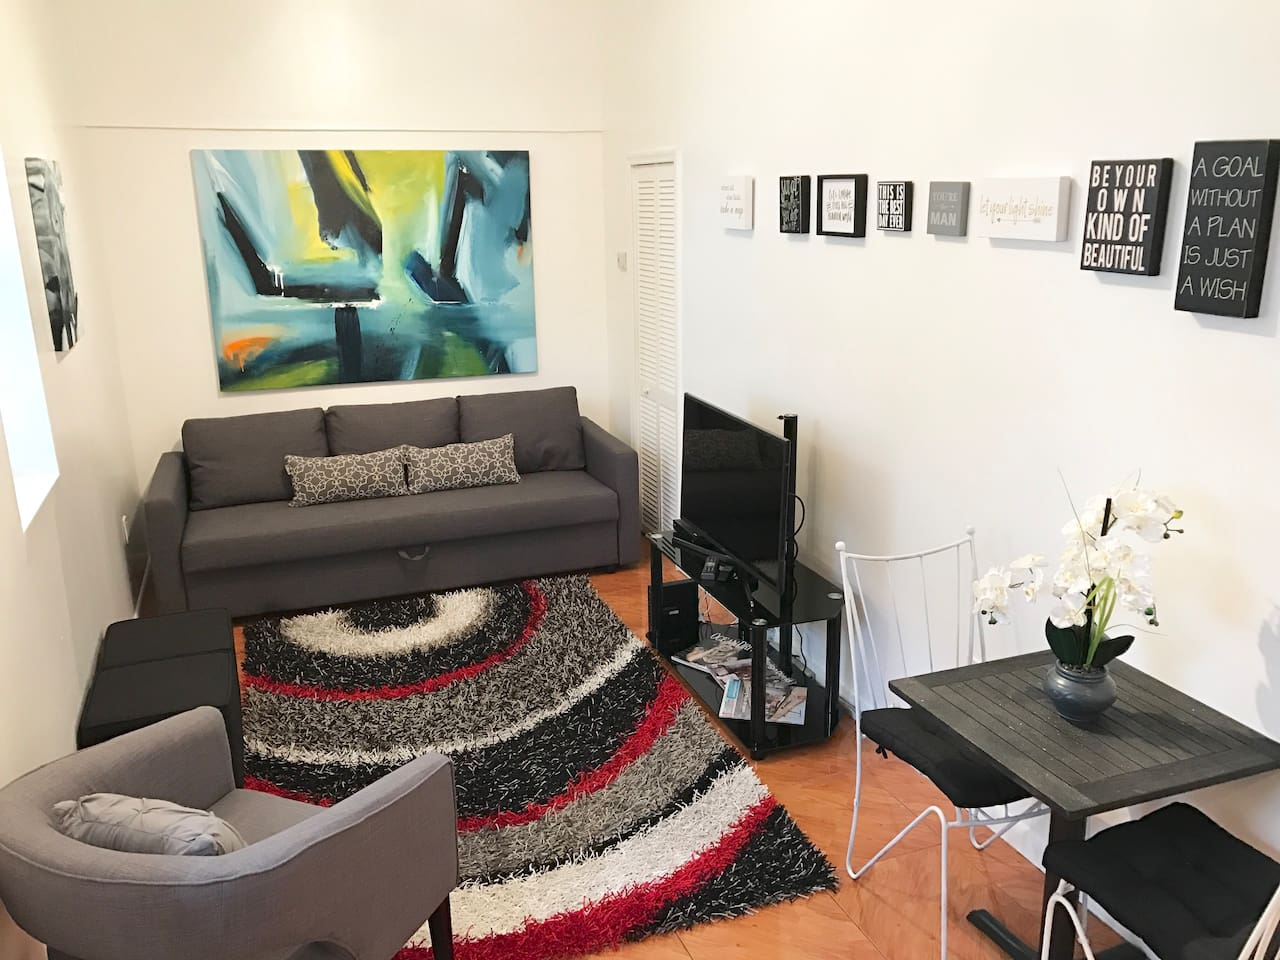 New Ikea Sleeper Sofa; Flat-Screen television with Netflix; private high speed WiFi  signal throughout apartment and outdoor area